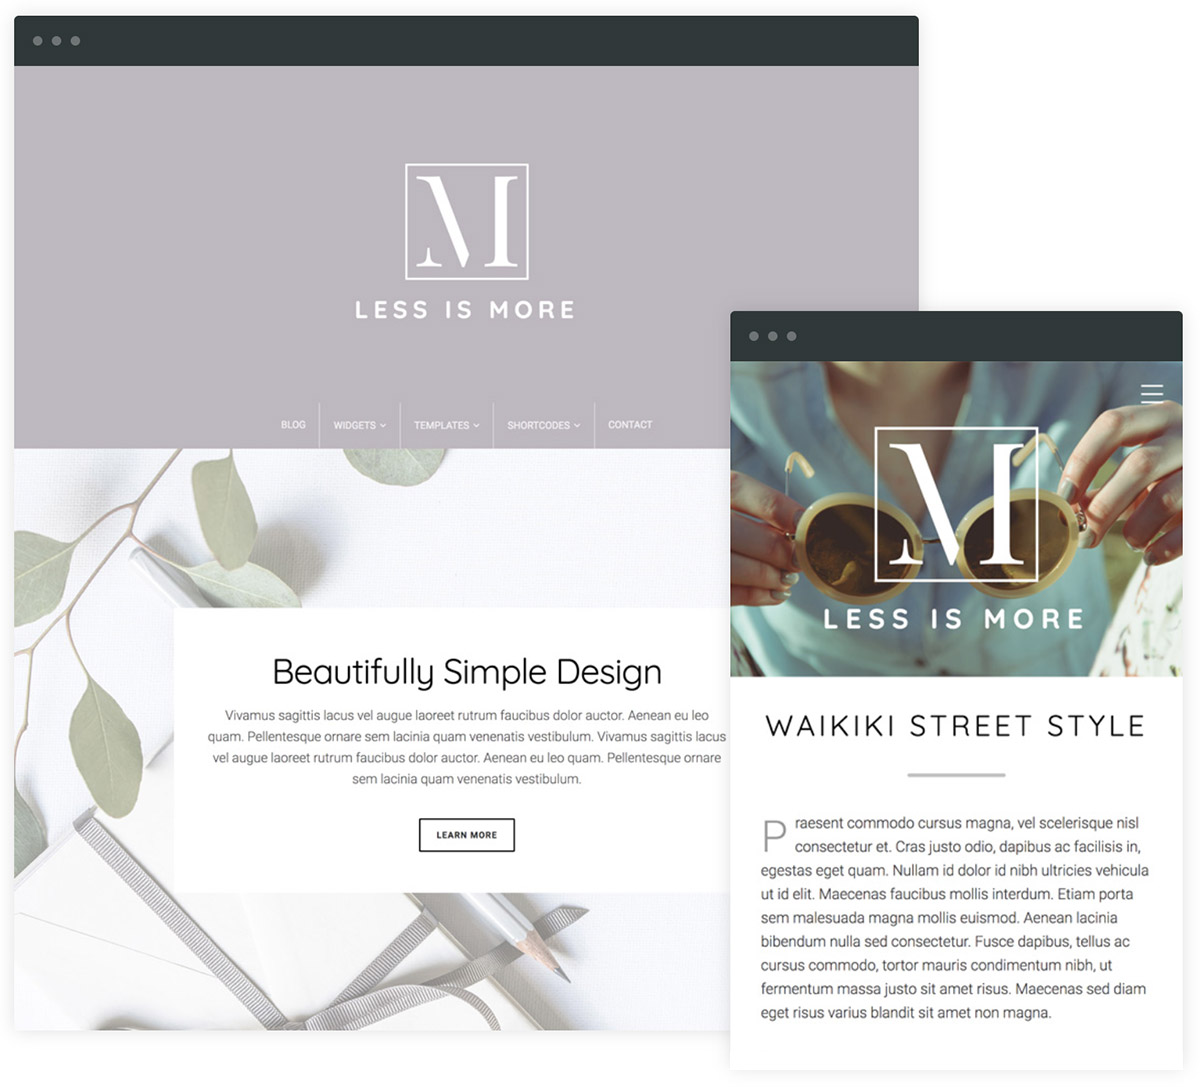 Min theme a new minimal wordpress theme from organic themes additionally we avoid flashy effects that cheapen the website experience the min theme is a new minimal wordpress theme that adheres to this philosophy maxwellsz